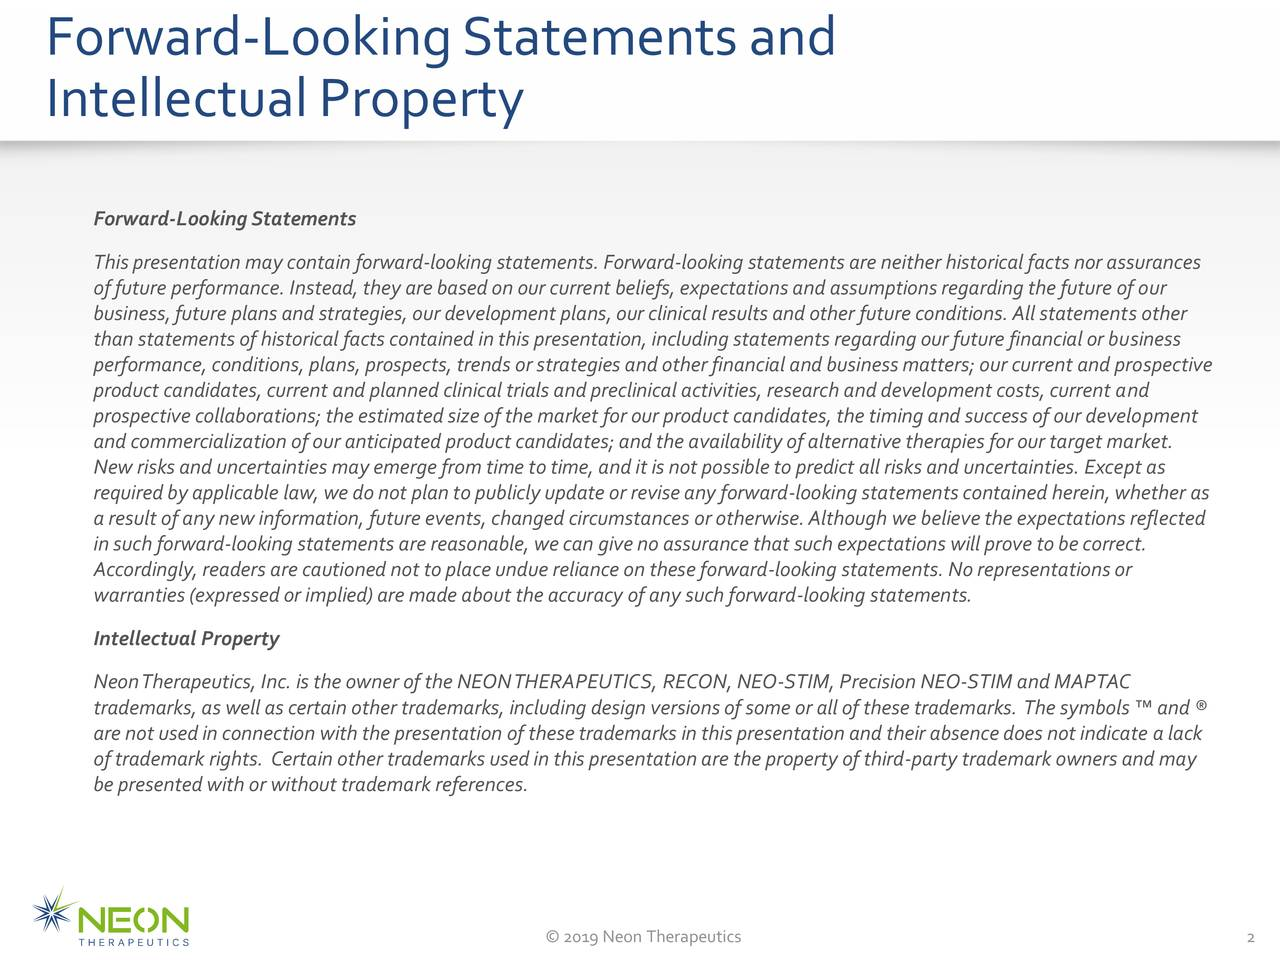 IntellectualProperty Forward-LookingStatements Thispresentation may contain forward-looking statements.Forward-looking statementsare neitherhistoricalfacts nor assurances offuture performance. Instead,they arebasedonour current beliefs,expectationsandassumptionsregarding the future ofour business,future plansand strategies,our developmentplans,our clinical resultsandother future conditions.Allstatementsother than statements ofhistorical facts containedinthispresentation,including statementsregarding our future financial orbusiness performance, conditions, plans,prospects,trendsorstrategies andother financial andbusinessmatters;our current and prospective product candidates,current and plannedclinicaltrials andpreclinical activities,research anddevelopmentcosts,current and prospective collaborations; the estimatedsizeofthe market forour product candidates,the timing andsuccessofour development andcommercialization ofour anticipated product candidates; andthe availabilityofalternative therapies for our target market. Newrisks anduncertainties may emergefrom time totime,andit isnotpossibletopredict allrisks anduncertainties. Exceptas requiredbyapplicable law,we donot planto publiclyupdate orreviseanyforward-looking statementscontained herein,whether as a result ofanynew information, future events,changedcircumstances orotherwise.Although webelievethe expectations reflected insuch forward-looking statements are reasonable,wecan givenoassurance thatsuch expectationswillprove tobe correct. Accordingly, readers are cautioned not to placeundue reliance onthese forward-looking statements.No representationsor warranties (expressedor implied)are made aboutthe accuracy ofanysuchforward-looking statements. Intellectual Property NeonTherapeutics,Inc. isthe owner ofthe NEONTHERAPEUTICS, RECON, NEO-STIM, Precision NEO-STIM andMAPTAC trademarks, as wellascertain other trademarks, including designversionsofsomeor allofthese trademarks. The symbols™ and® are not used in connection wit